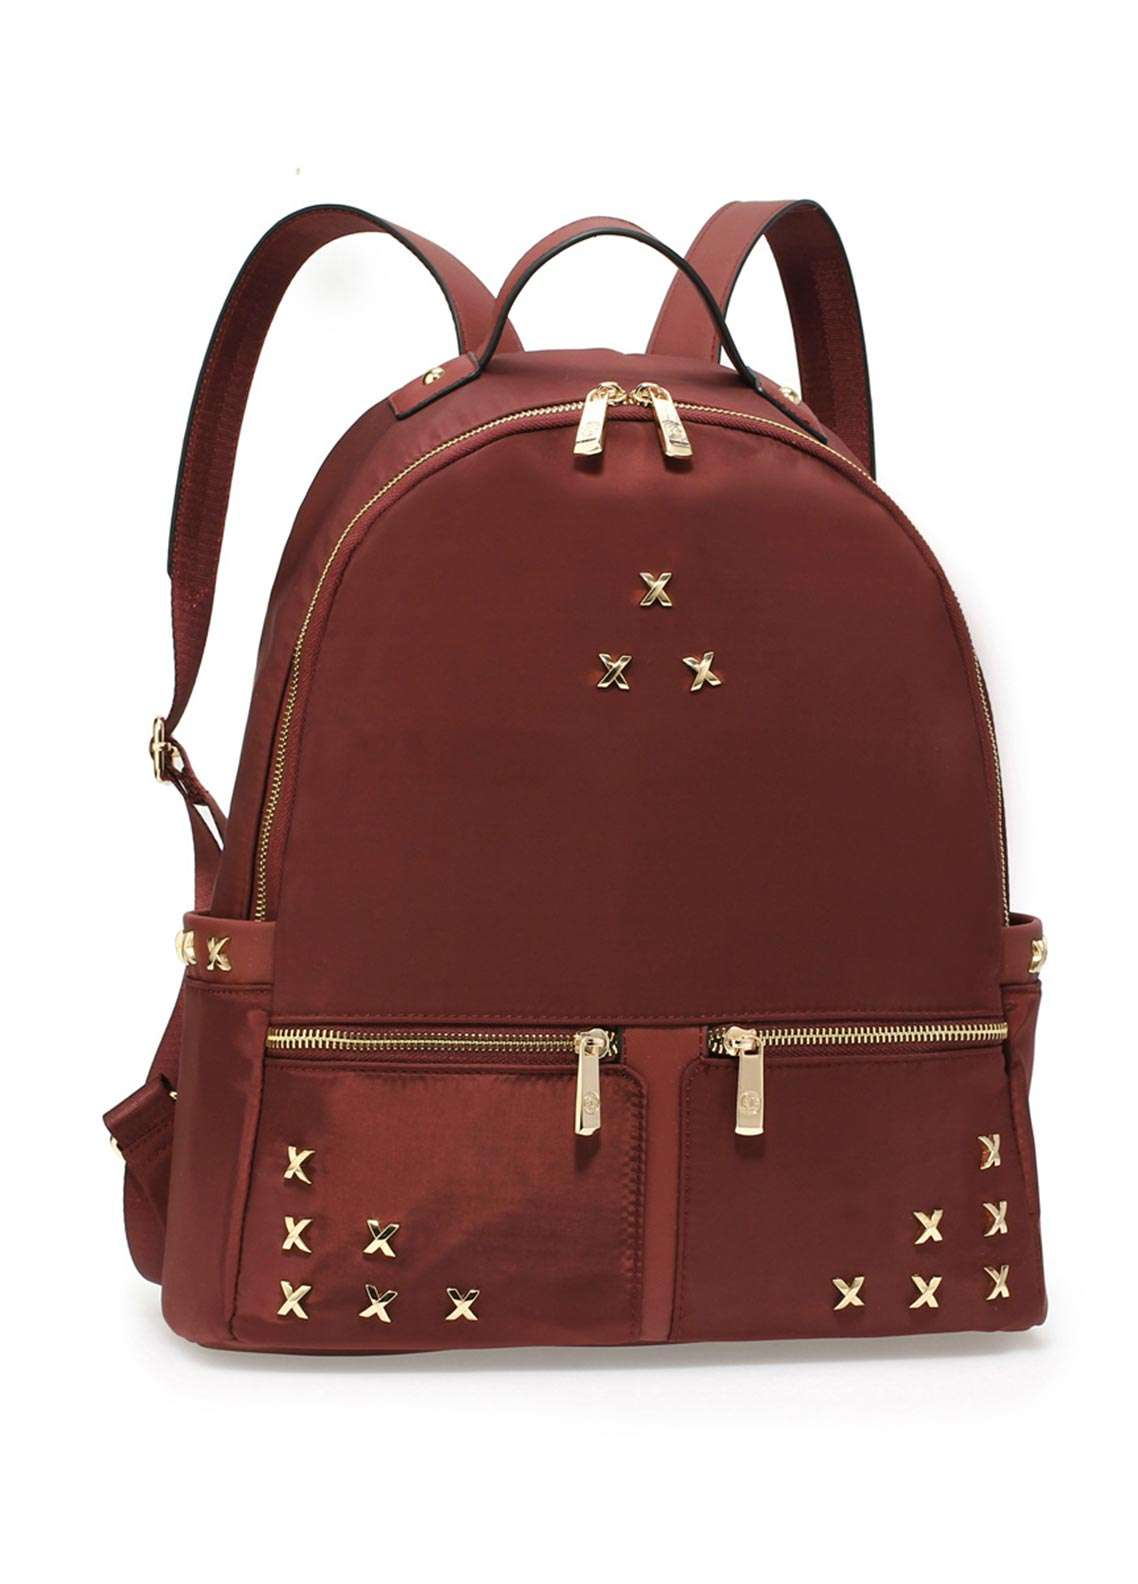 Anna Grace London Satin Backpack Bags  for Women  Red with Shiny Texture